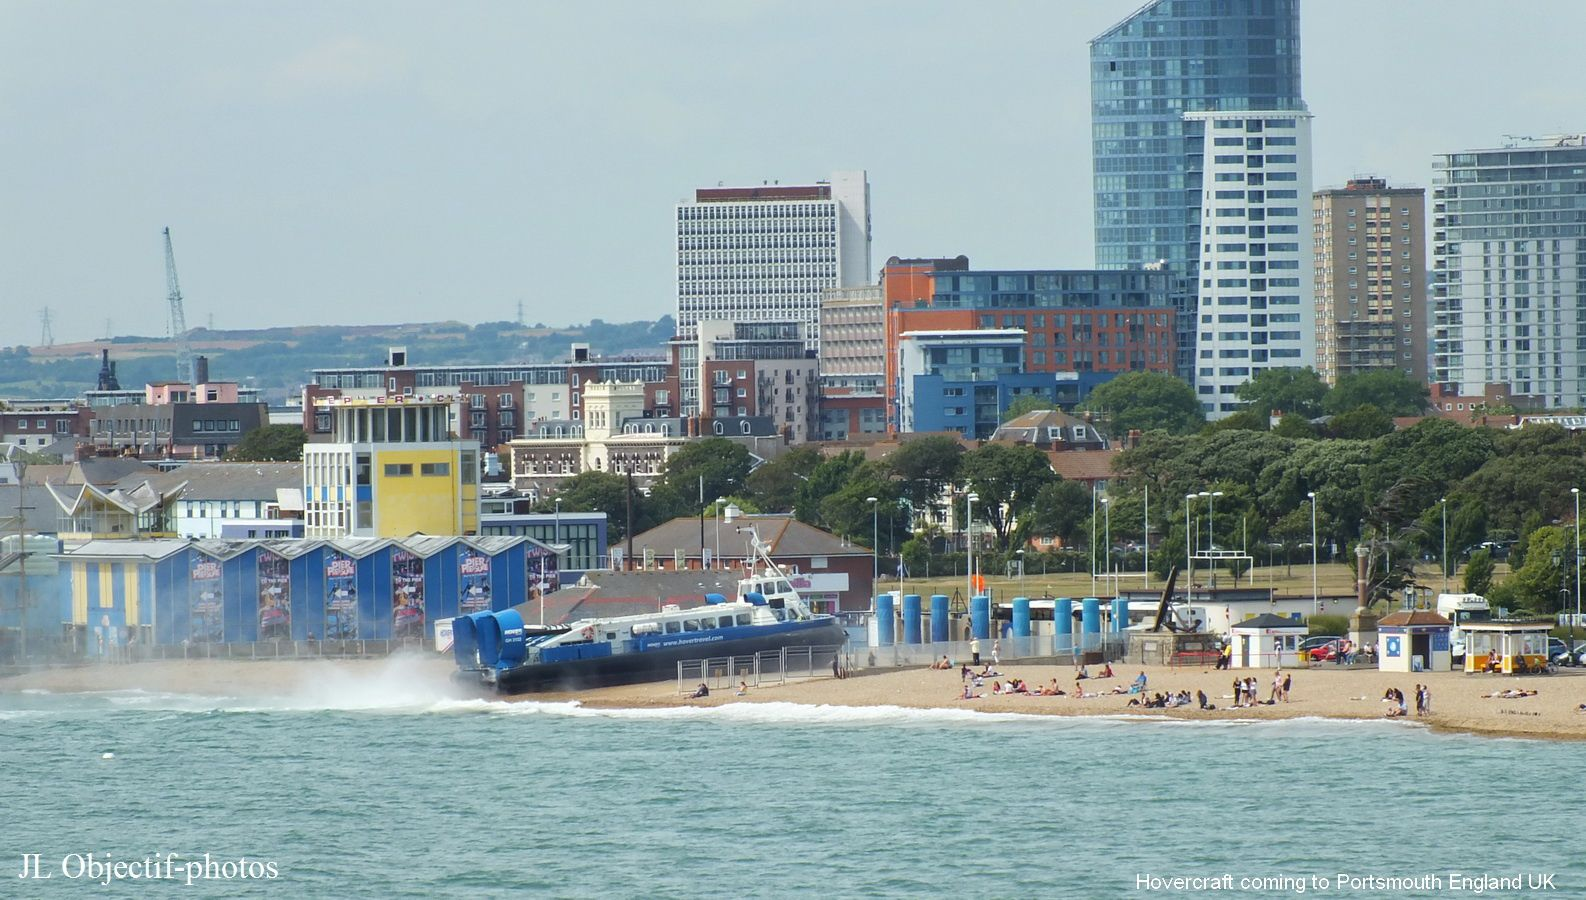 Hovercraft coming to Portsmouth Harbour England UK .